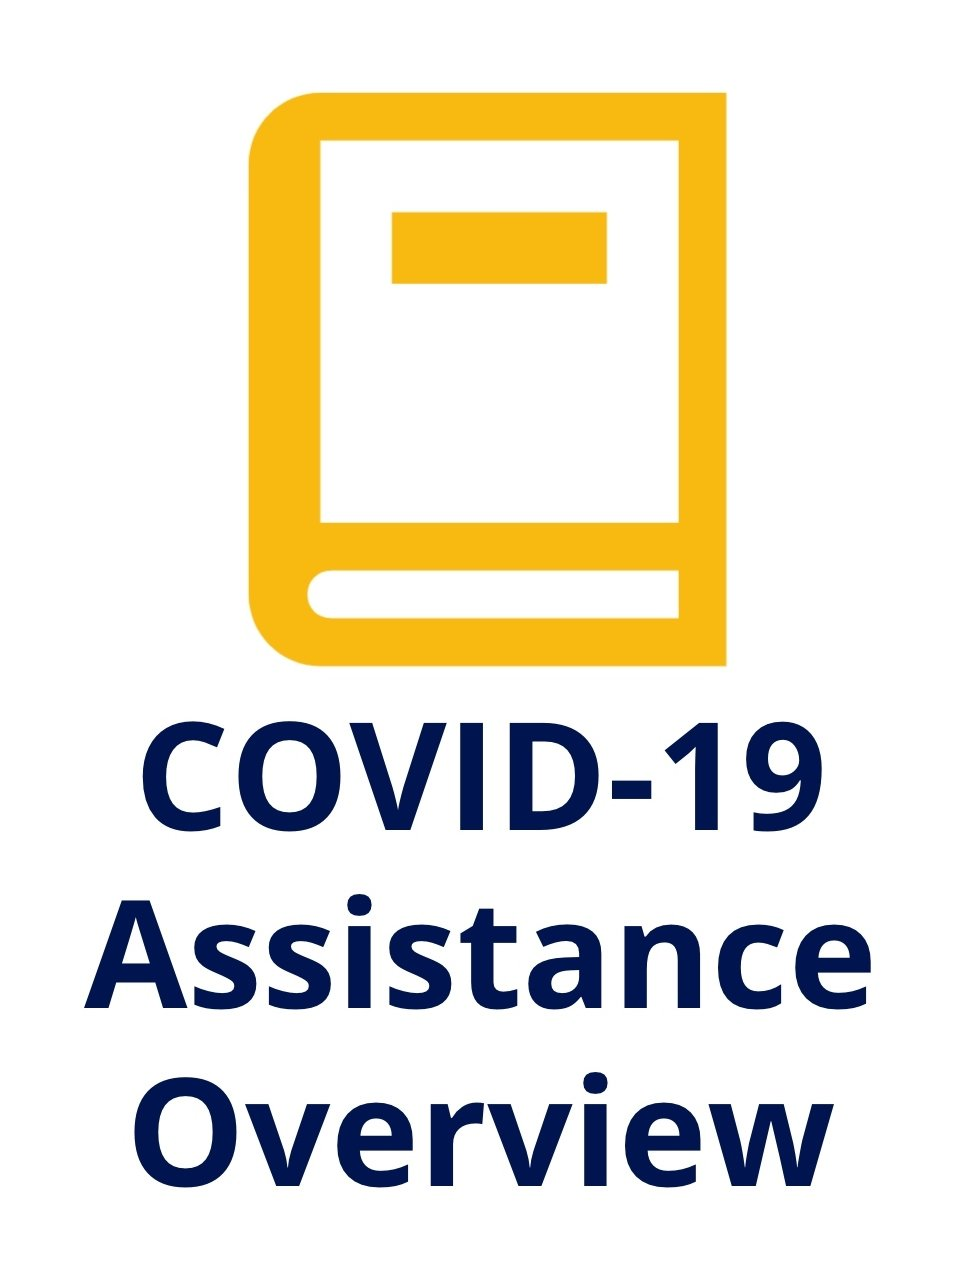 COVID-19 Assistance Overview